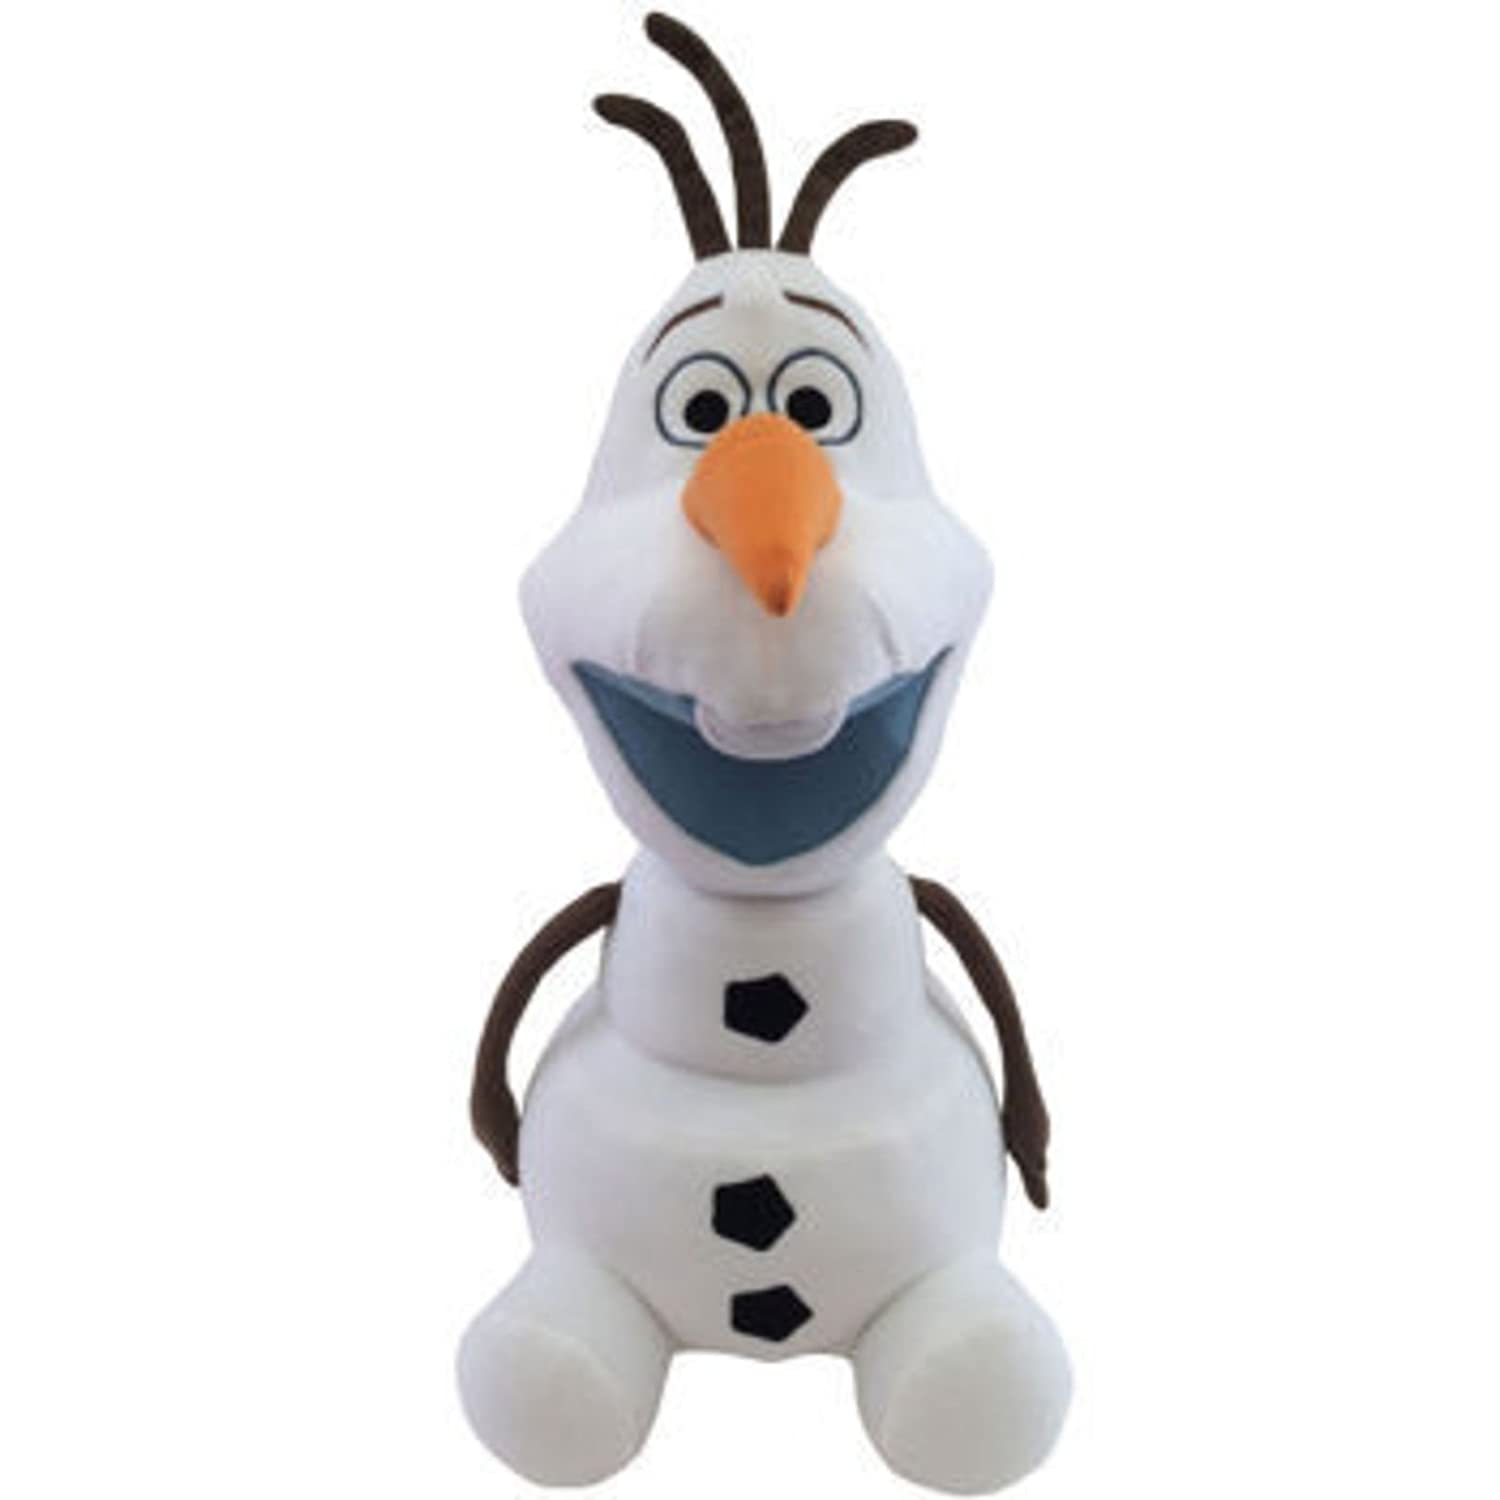 Only at Walmart. Price Shown at Cart. Price at Checkout. As Advertised. See more special offers. Retailer. downcfilau.gq Olaf Stuffed Animals. Showing 40 of results that match your query. Search Product Result. Product - 14